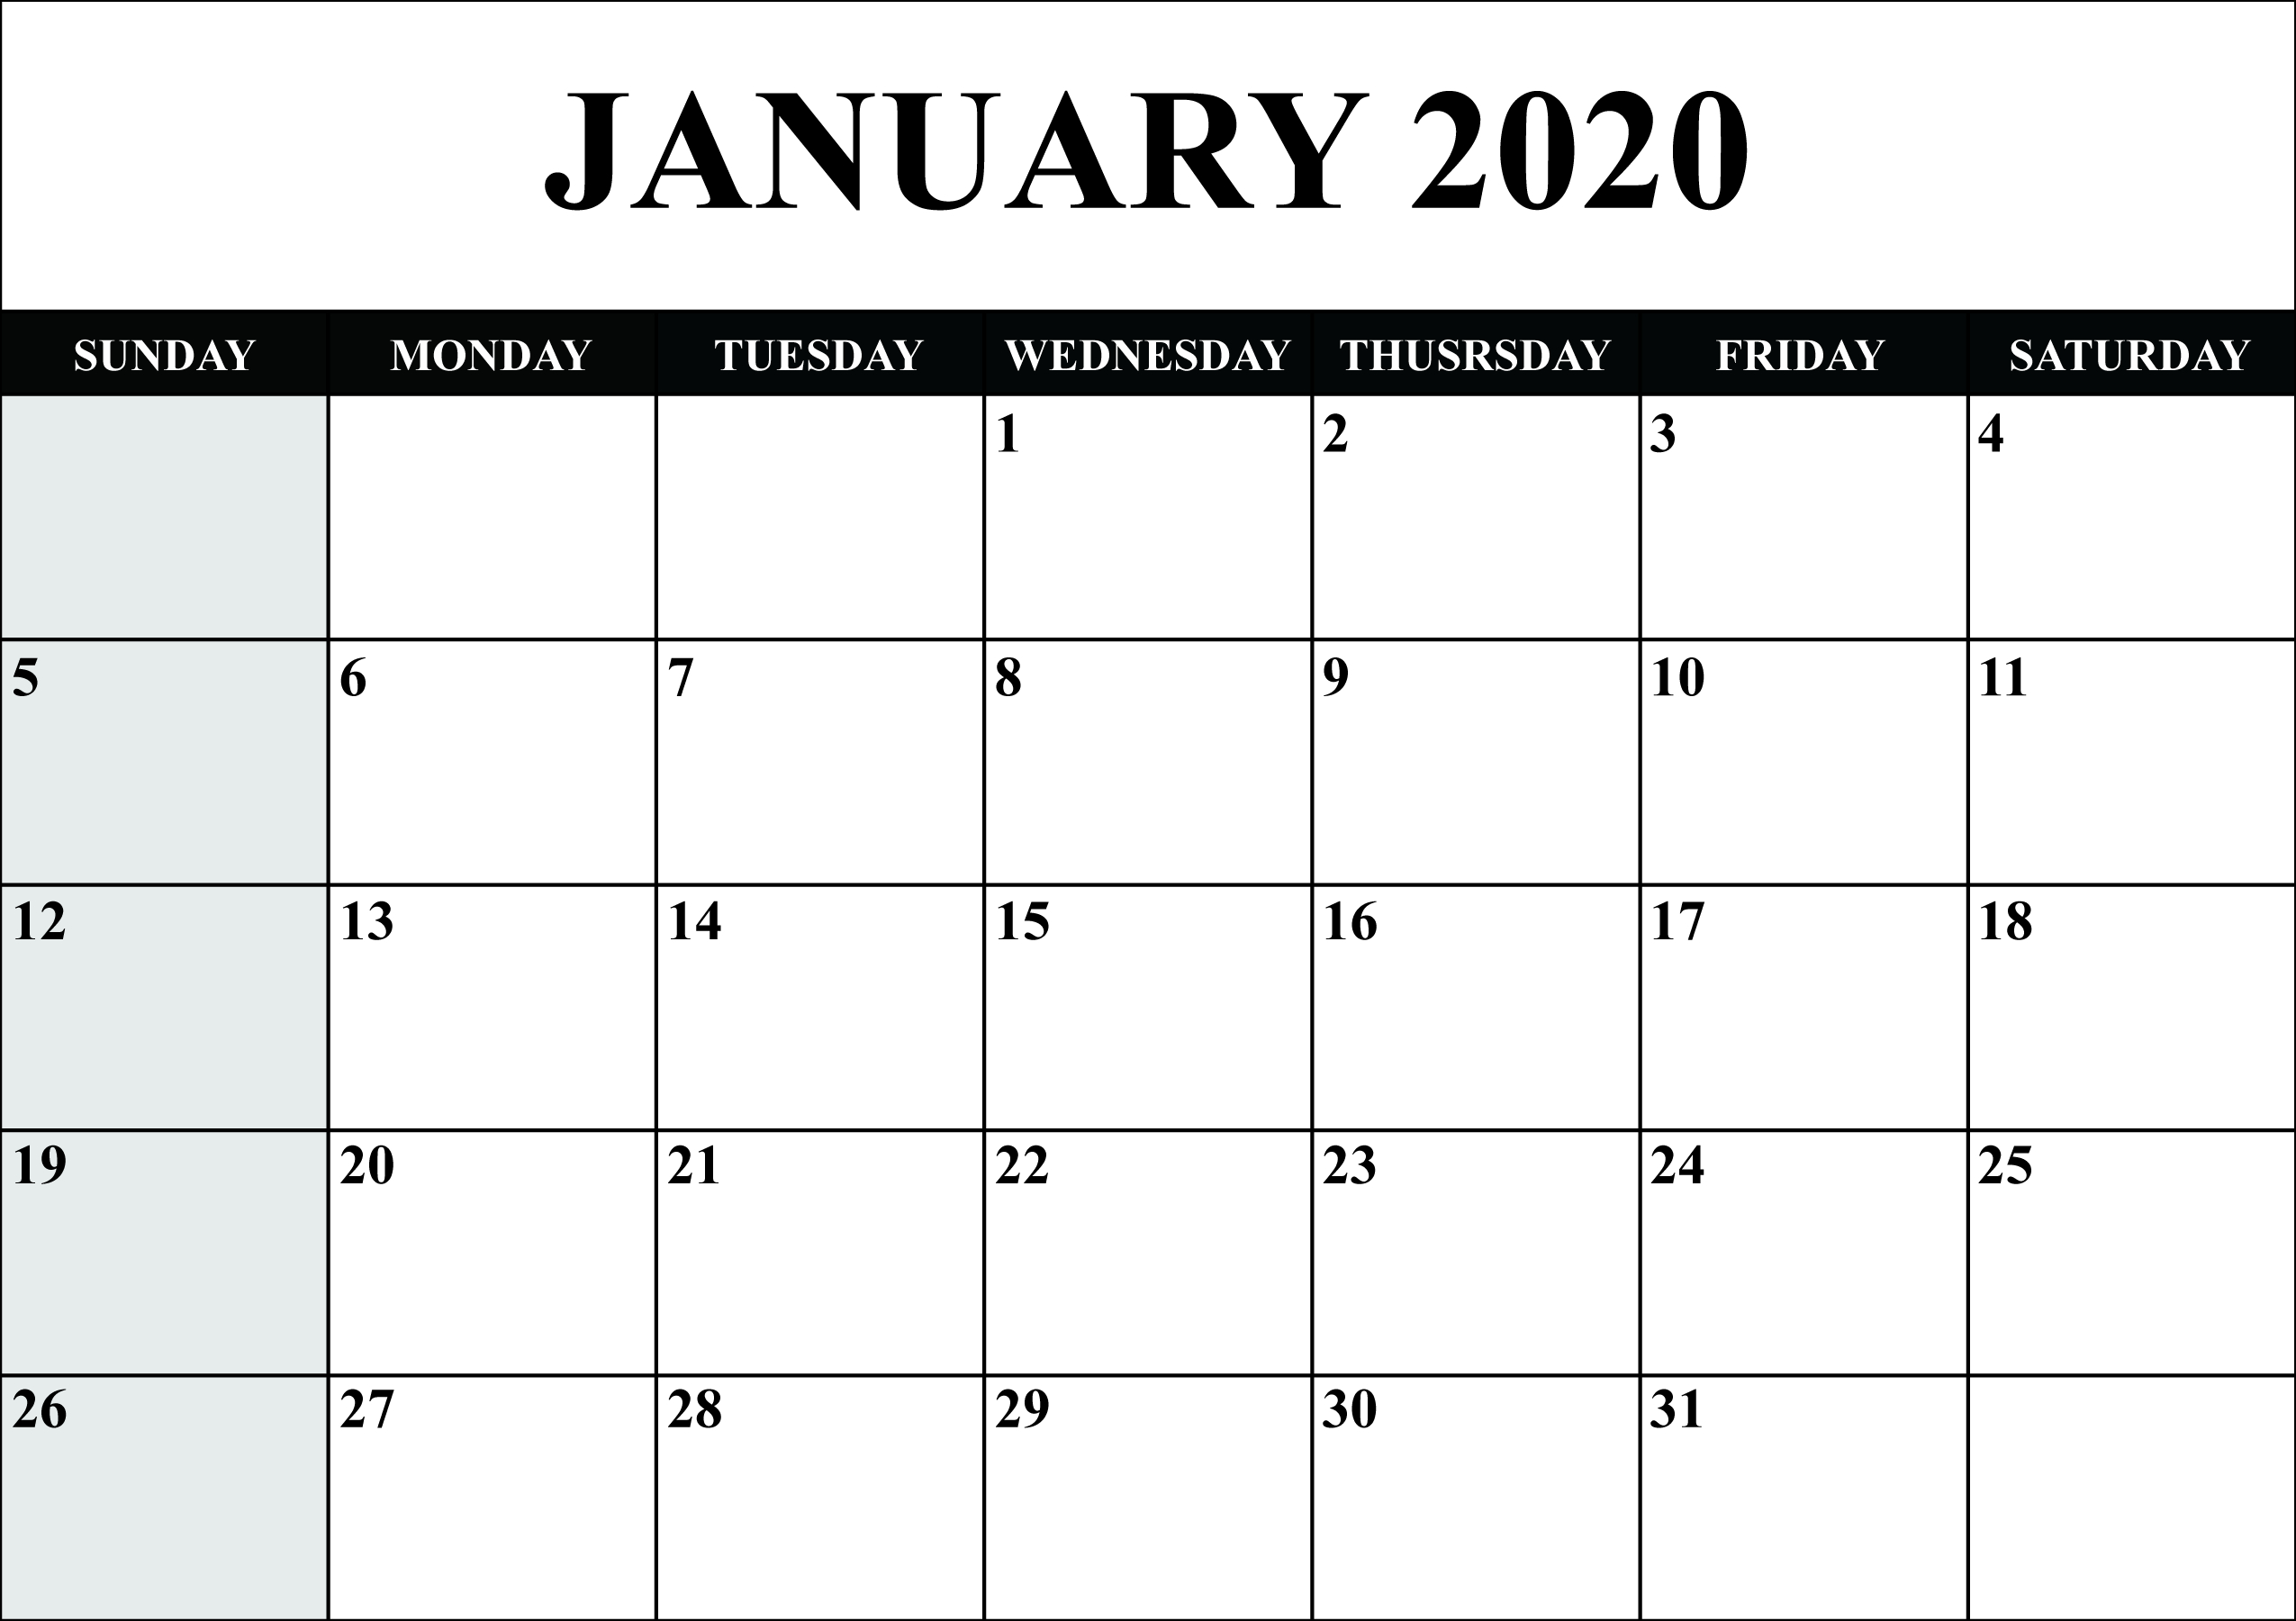 Calendar December 2020 January 2020  Yatay.horizonconsulting.co pertaining to Calendar 2020 January